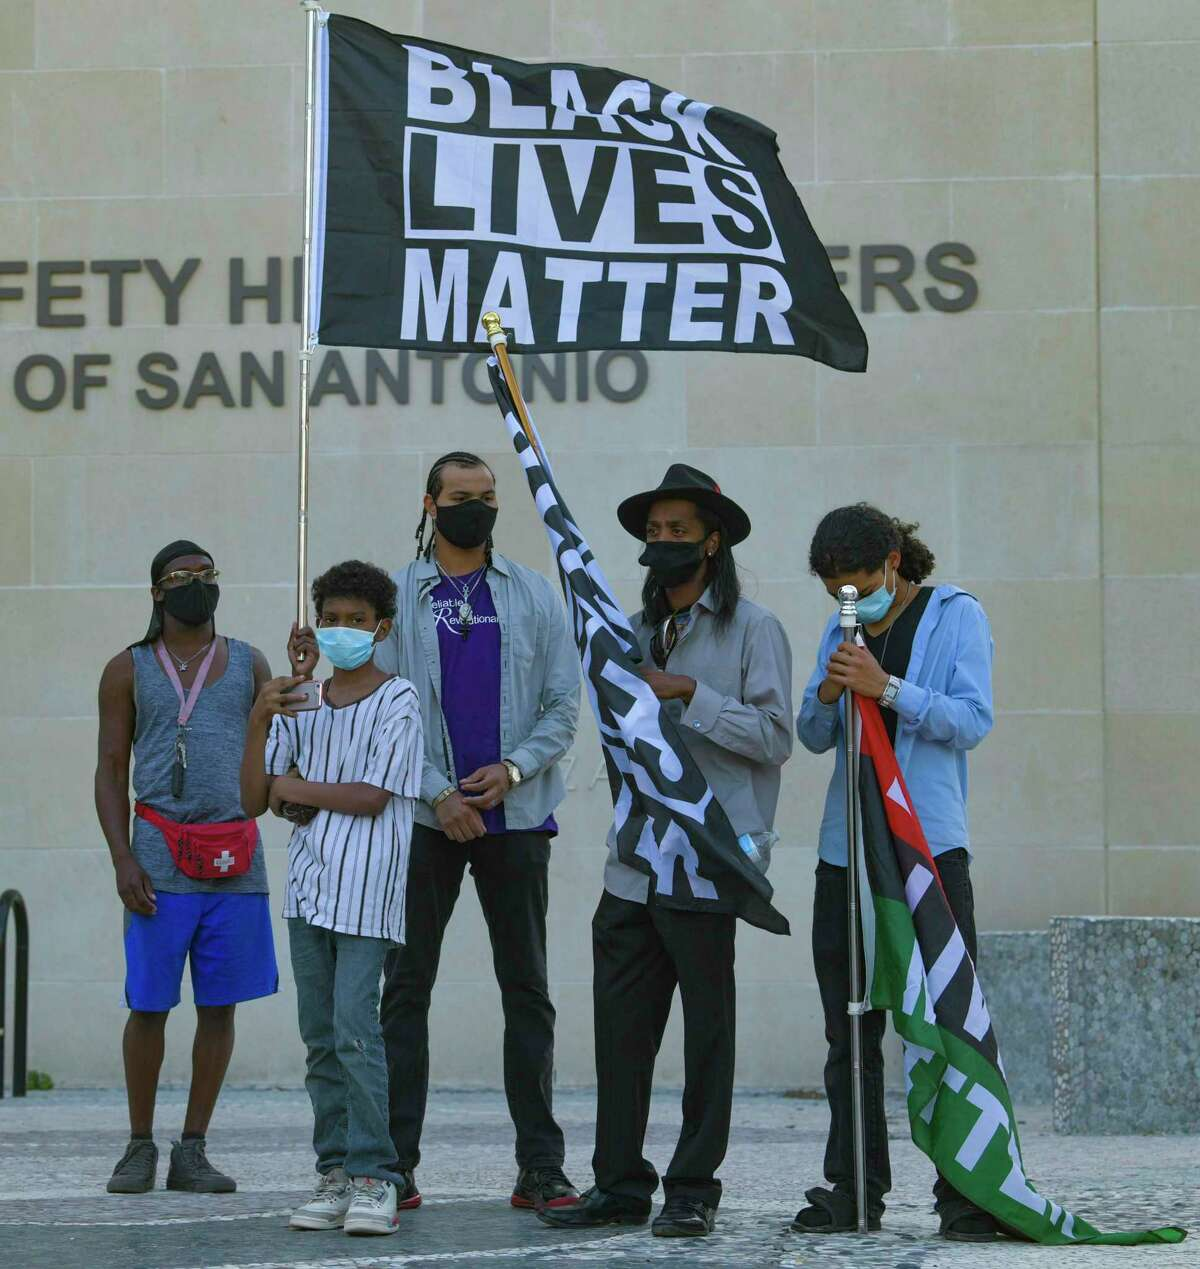 Young Ambitious Activists and others rally in downtown San Antonio on Friday, Sept. 25, 2020, because a grand jury in Kentucky this week did not indict police officers who shot and killed Breonna Taylor, a Black woman, six times in March.